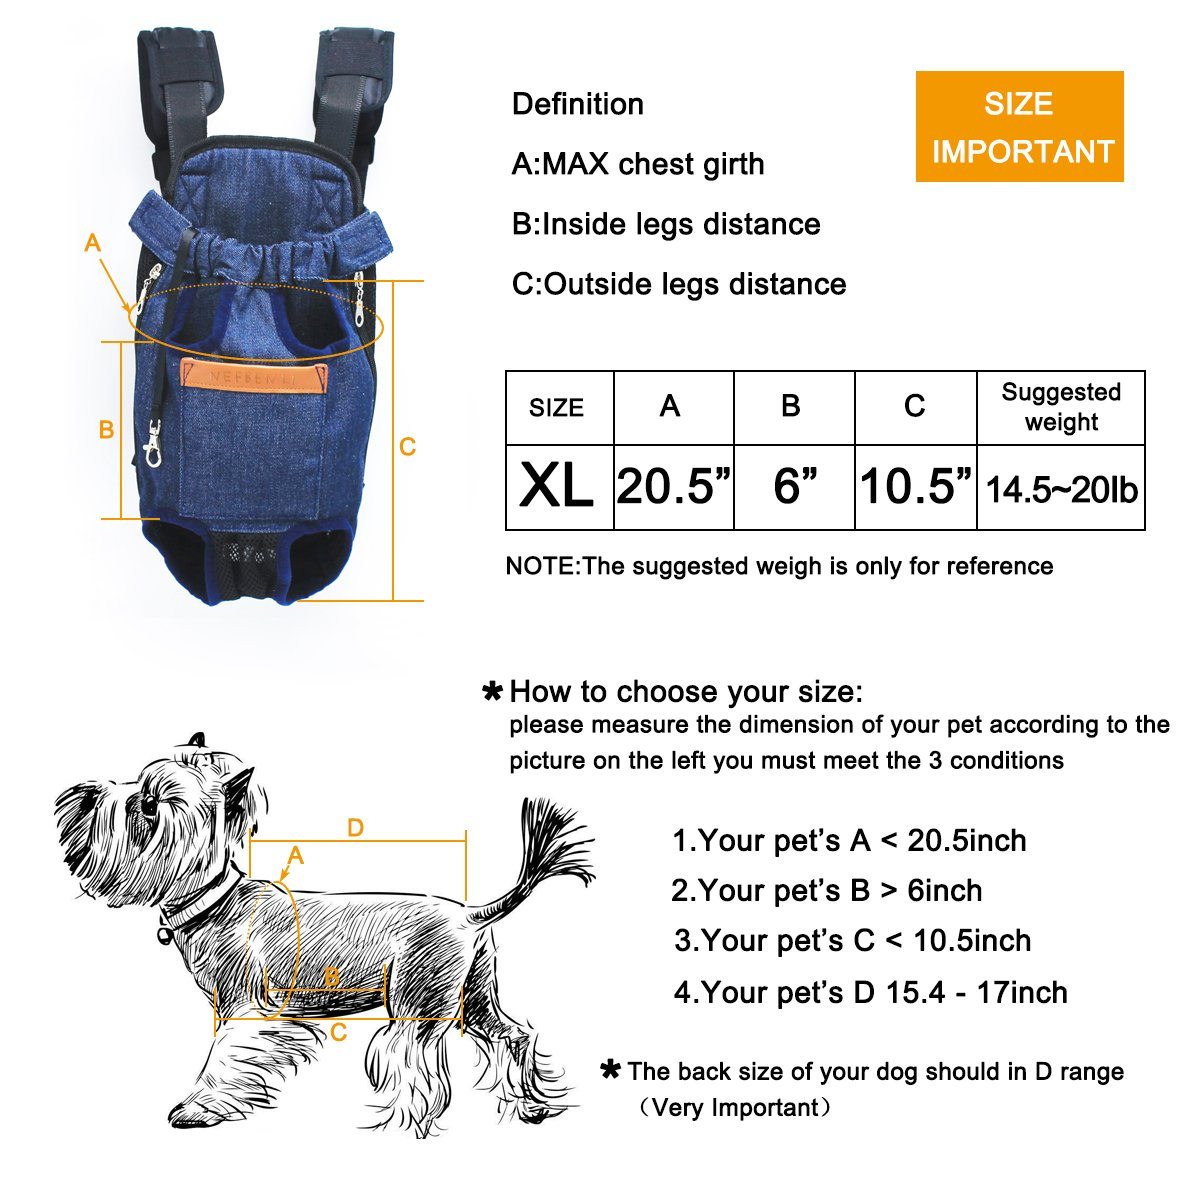 NEFBENLI Denim Blue Front Kangaroo Pouch Dog Carrier,Wide Straps Shoulder Pads,Adjustable Legs out Pet Backpack Carrier Walking,Travel,Hiking,Camping (X-Large) by NEFBENLI (Image #3)